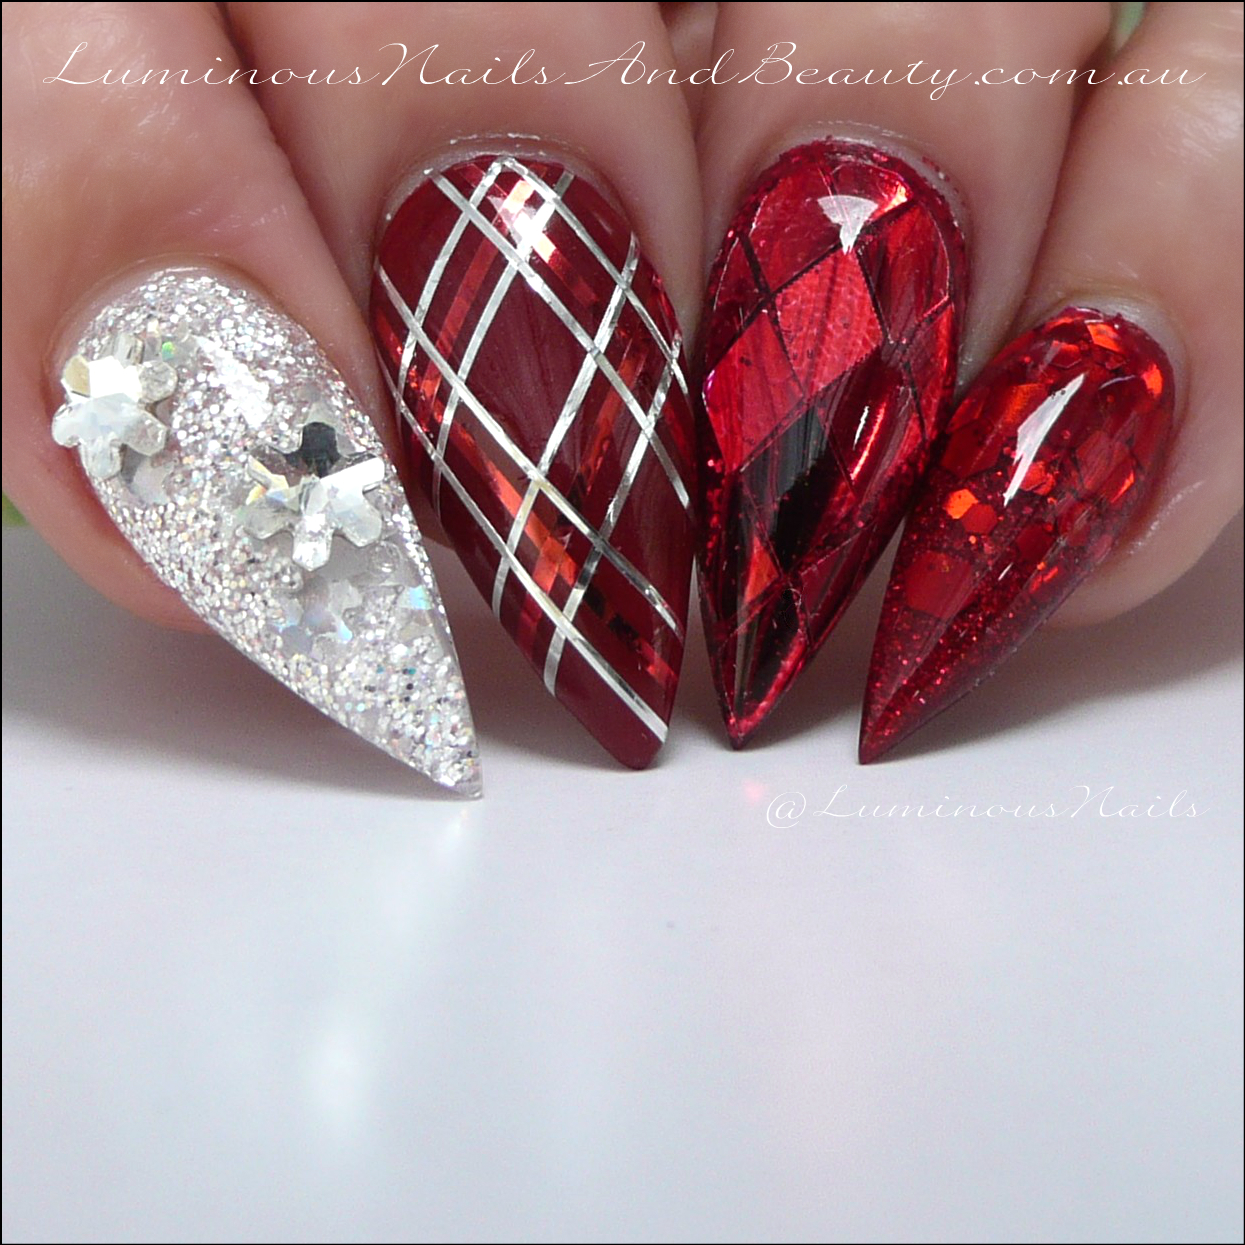 Luminous Nails: Christmas Nails... Red & Silver Christmas Nails ...